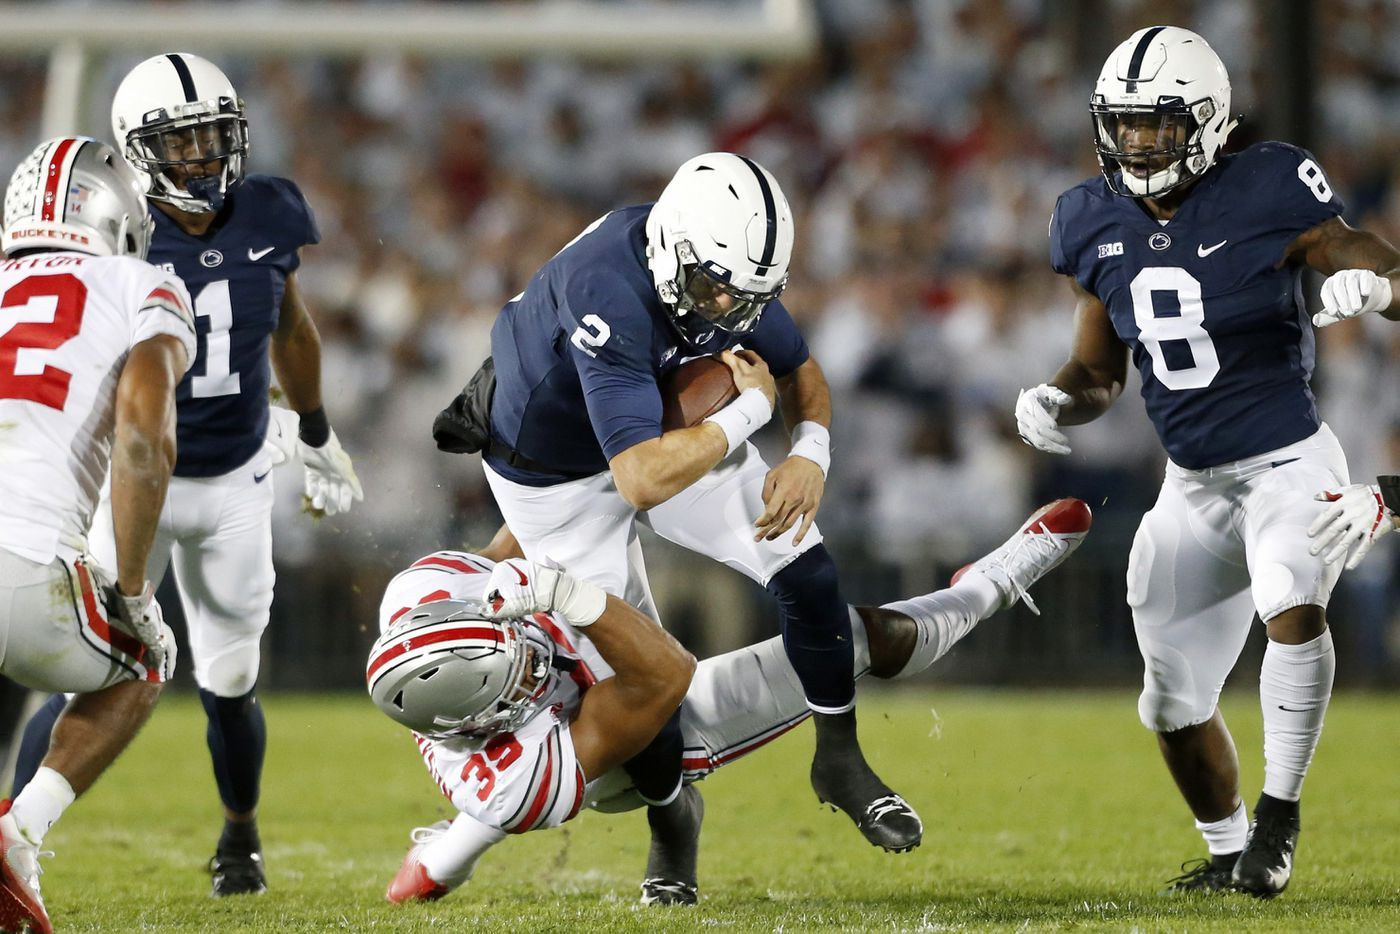 Penn State's Tommy Stevens not frustrated by lack of playing time